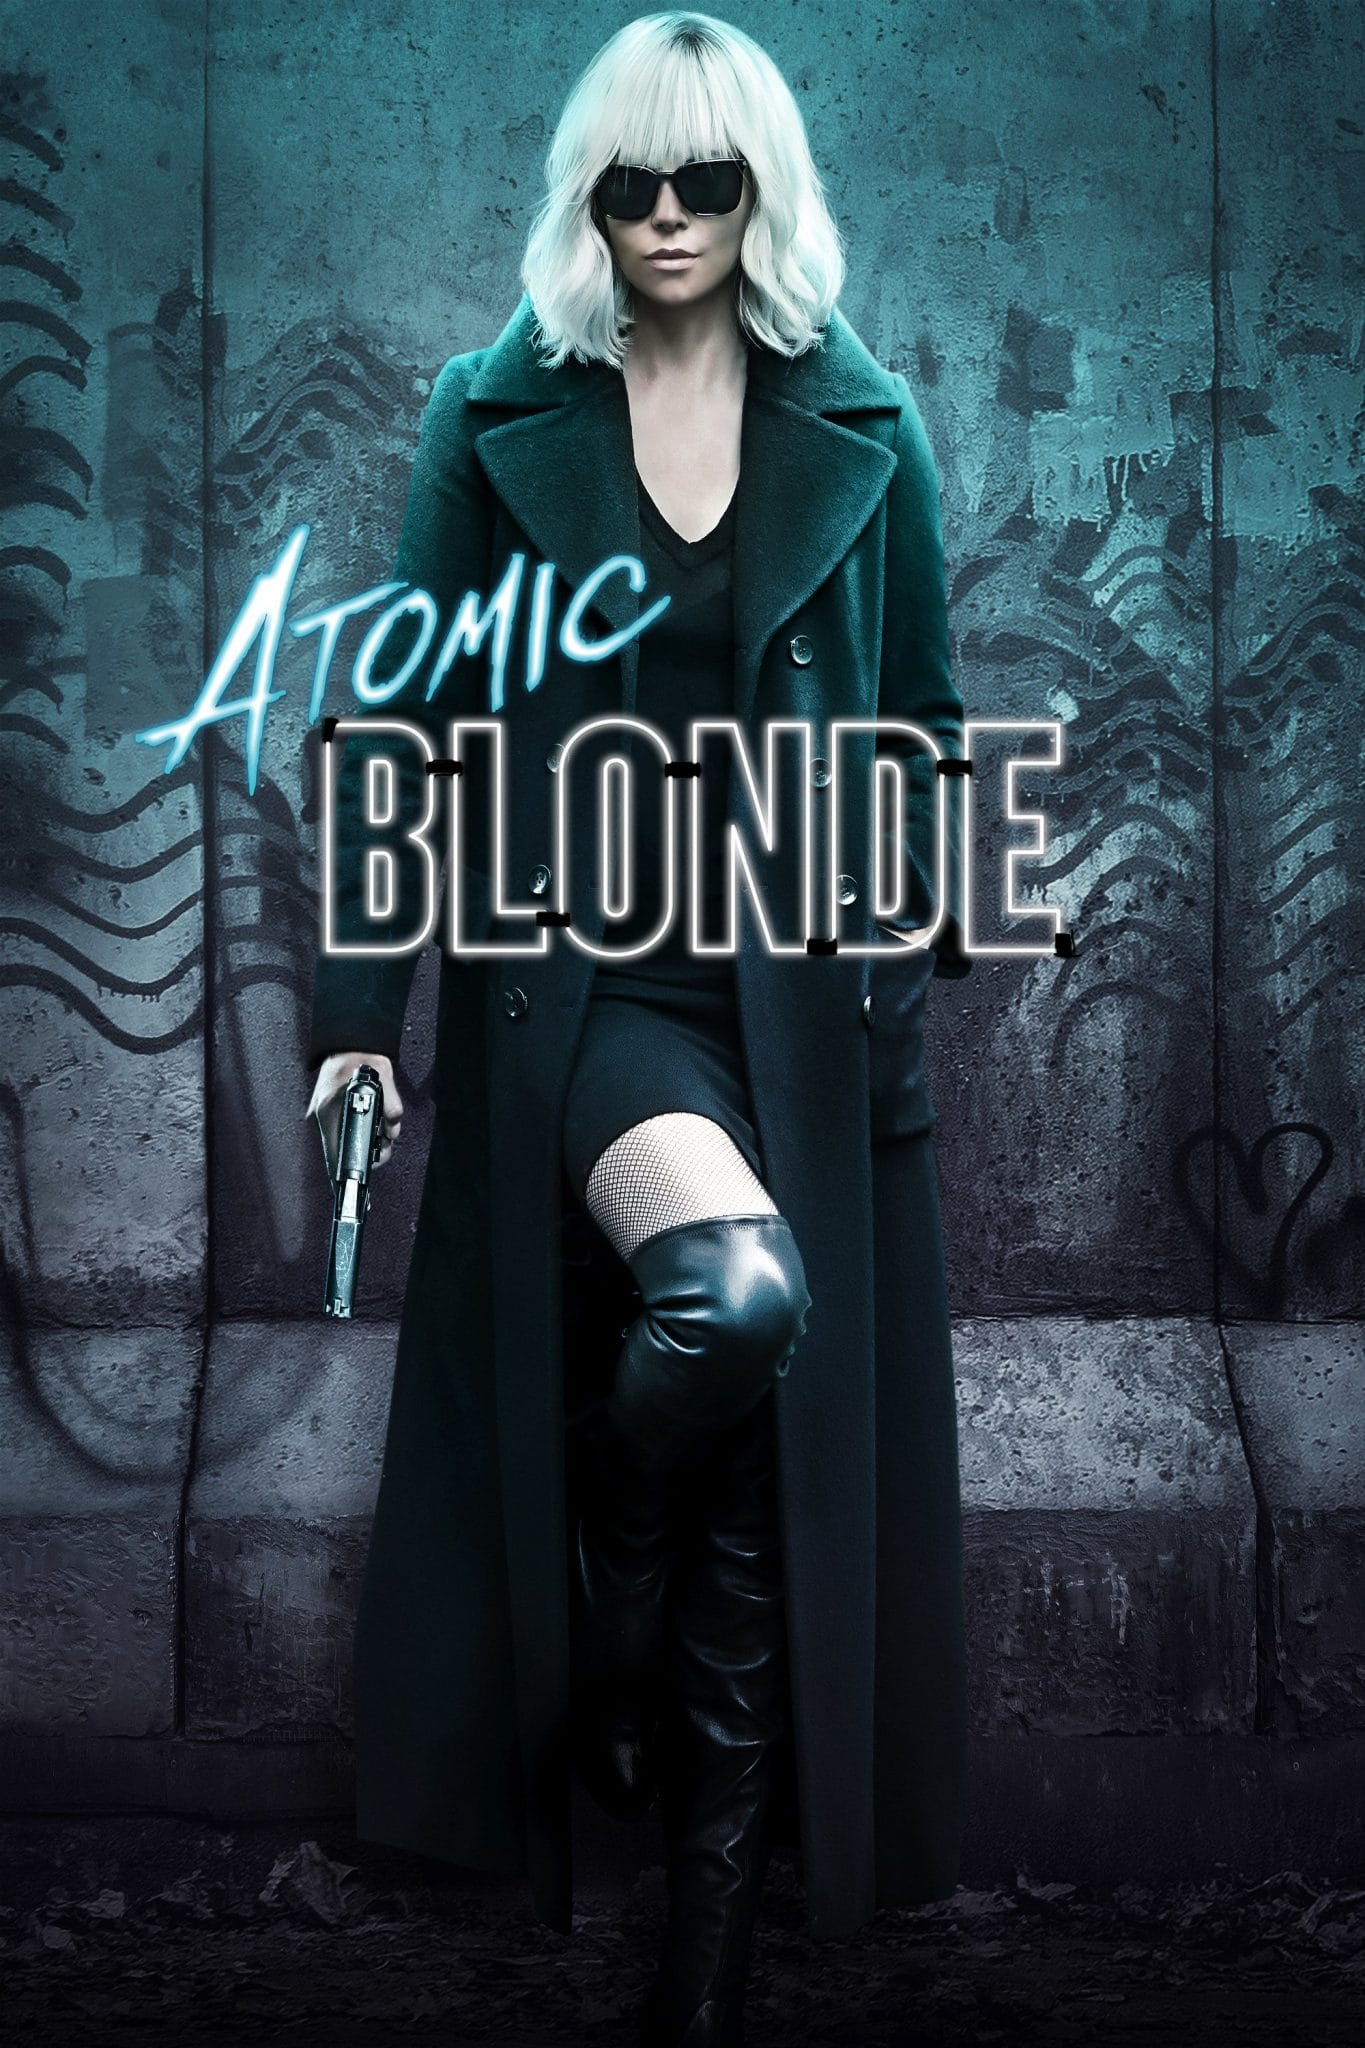 Regarder Atomic Blonde en streaming gratuit